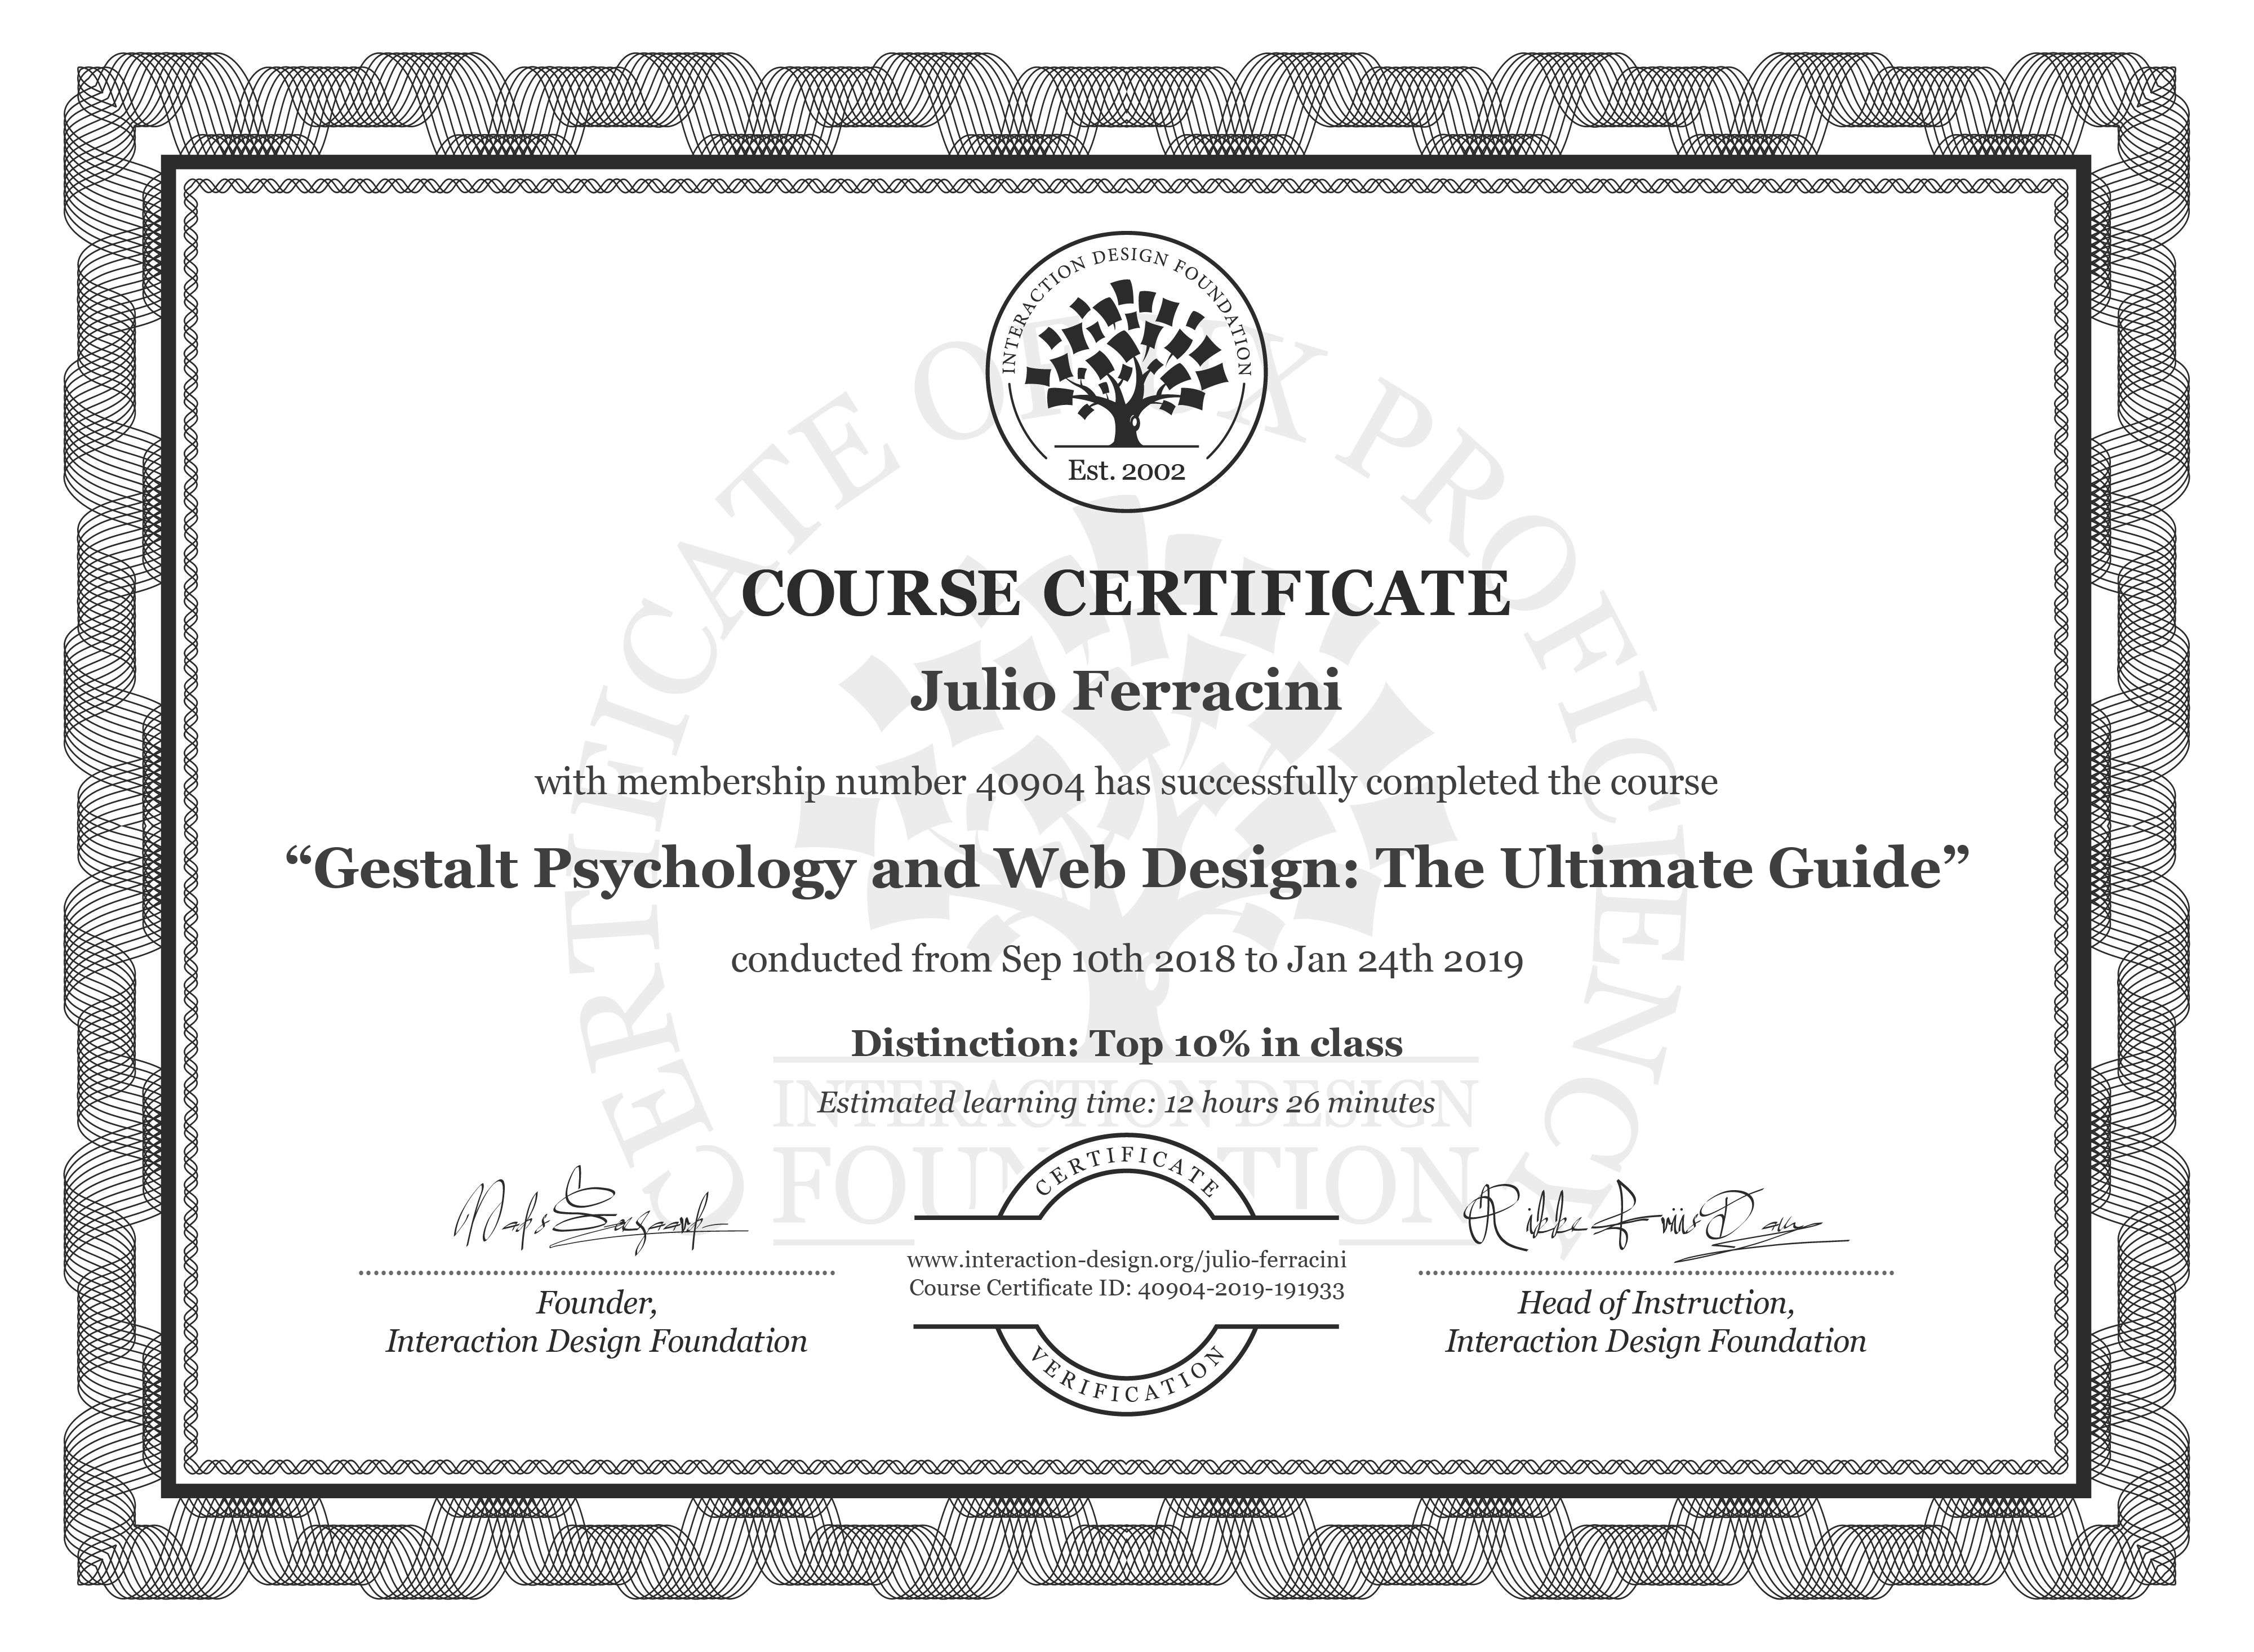 Julio Ferracini's Course Certificate: Gestalt Psychology and Web Design: The Ultimate Guide